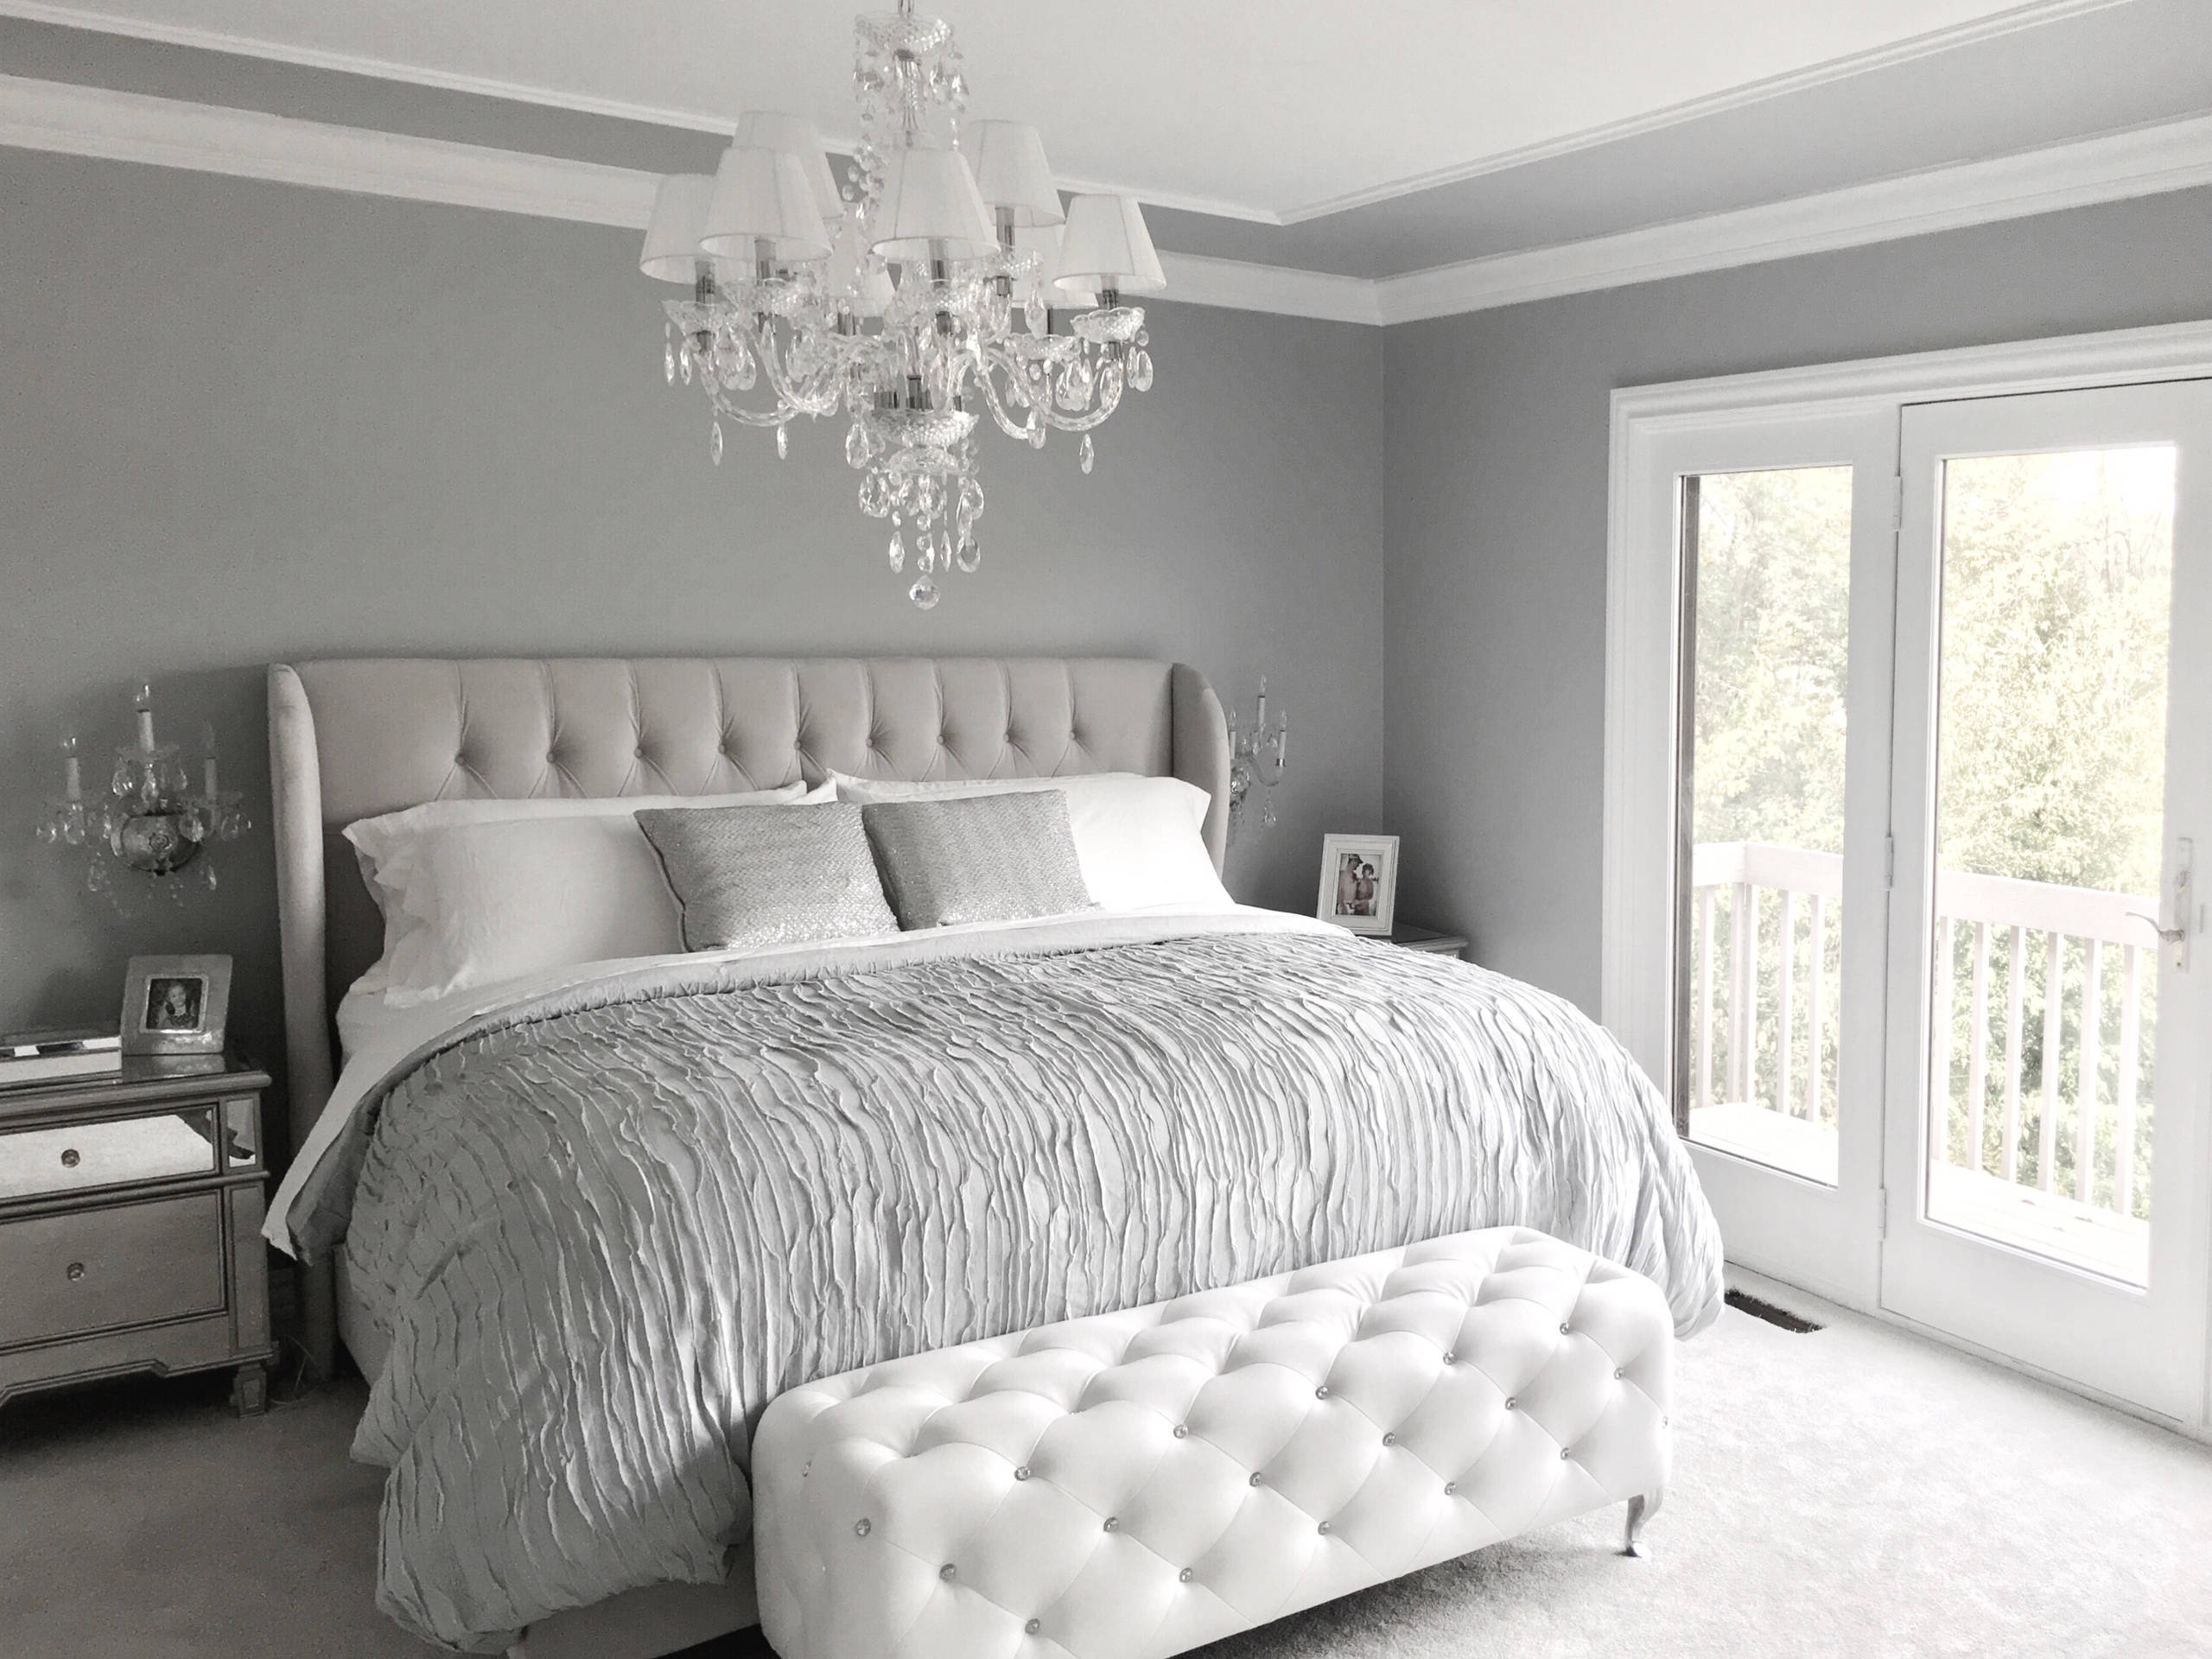 75 Beautiful Shabby Chic Style Bedroom With Gray Walls Pictures Ideas February 2021 Houzz